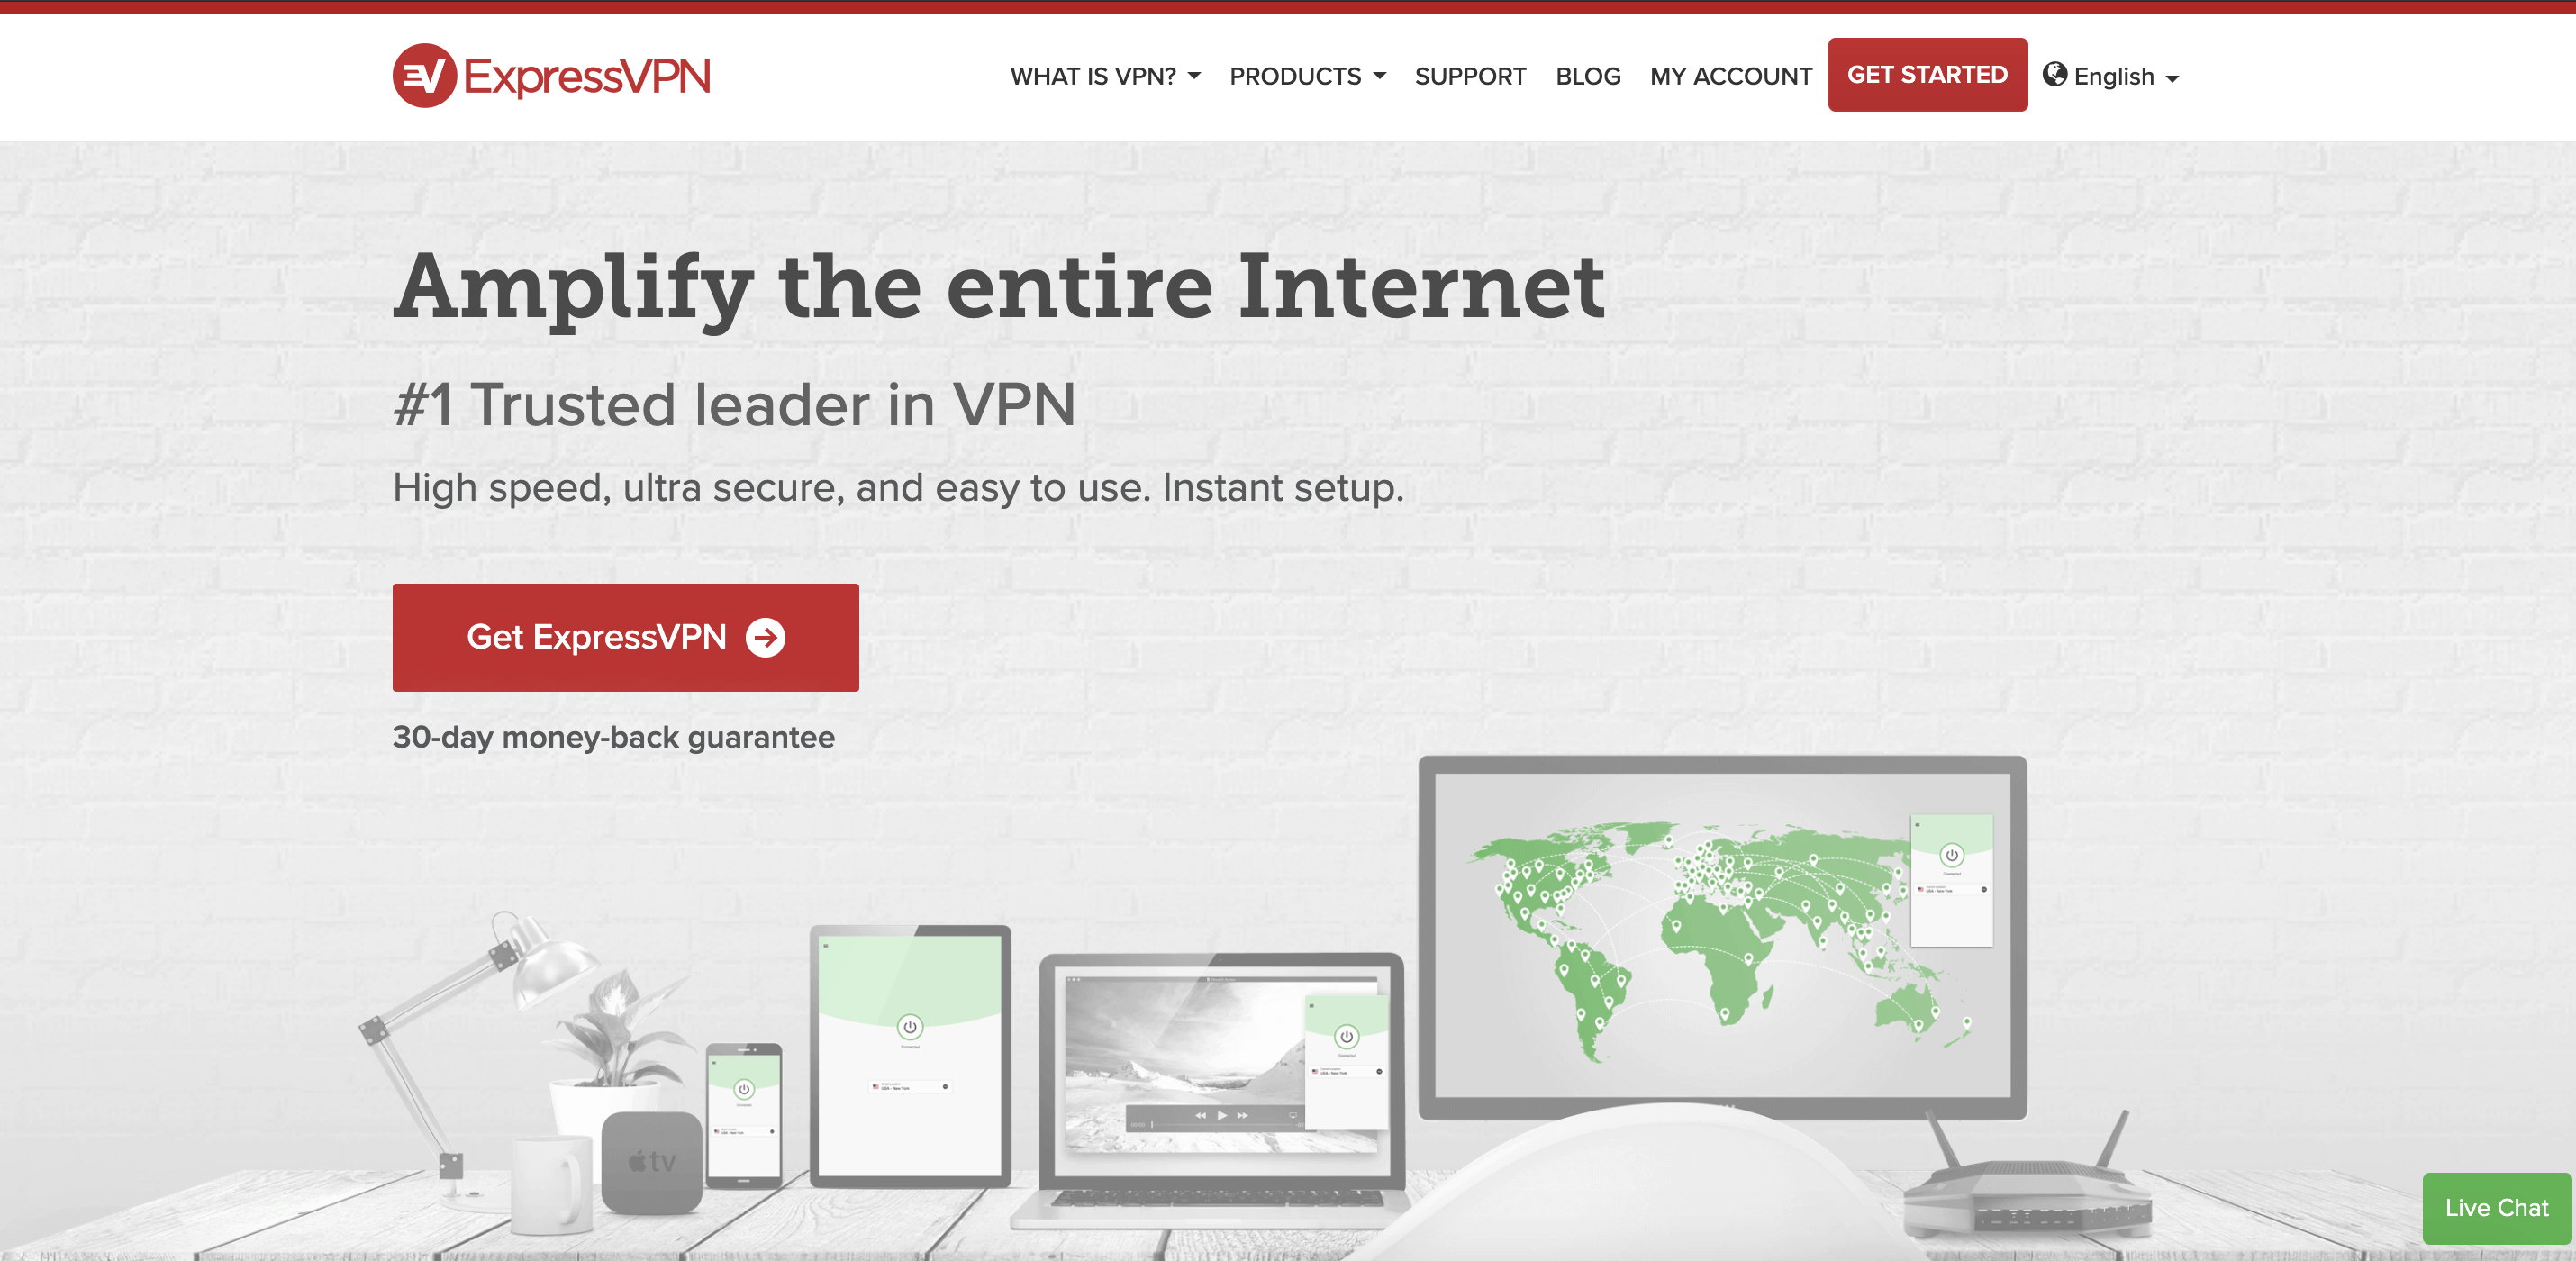 ExpressVPN Review: Is It Better Than NordVPN & PIA? Let's find